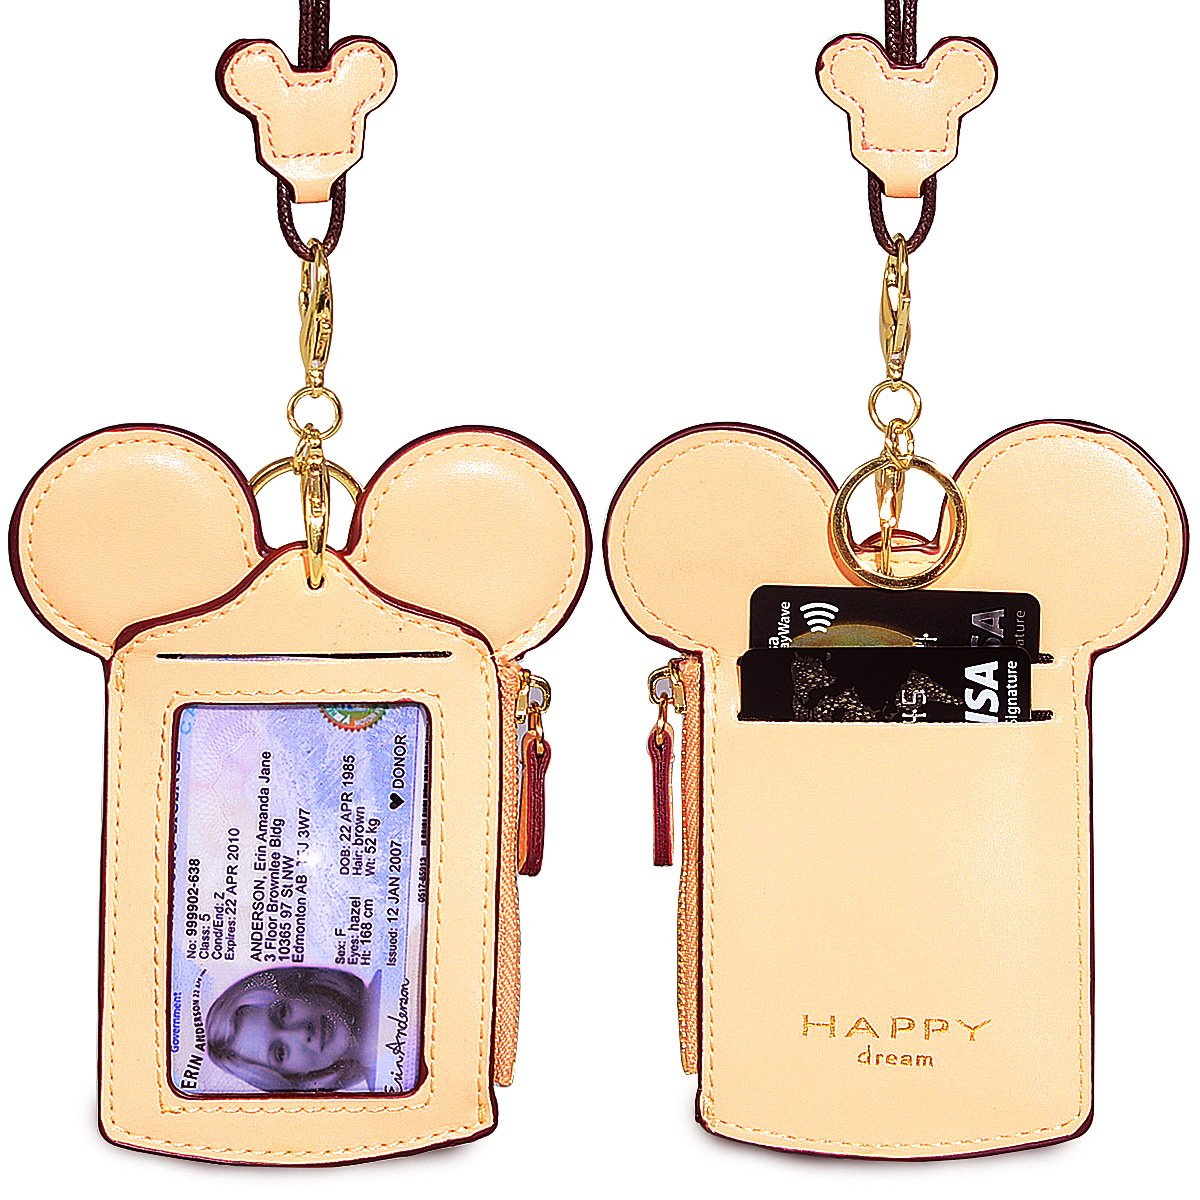 Student ID Card Holder Small Coin Wallet Purse Cute Fashion Neck Pouch for Kids Girls (Beige)